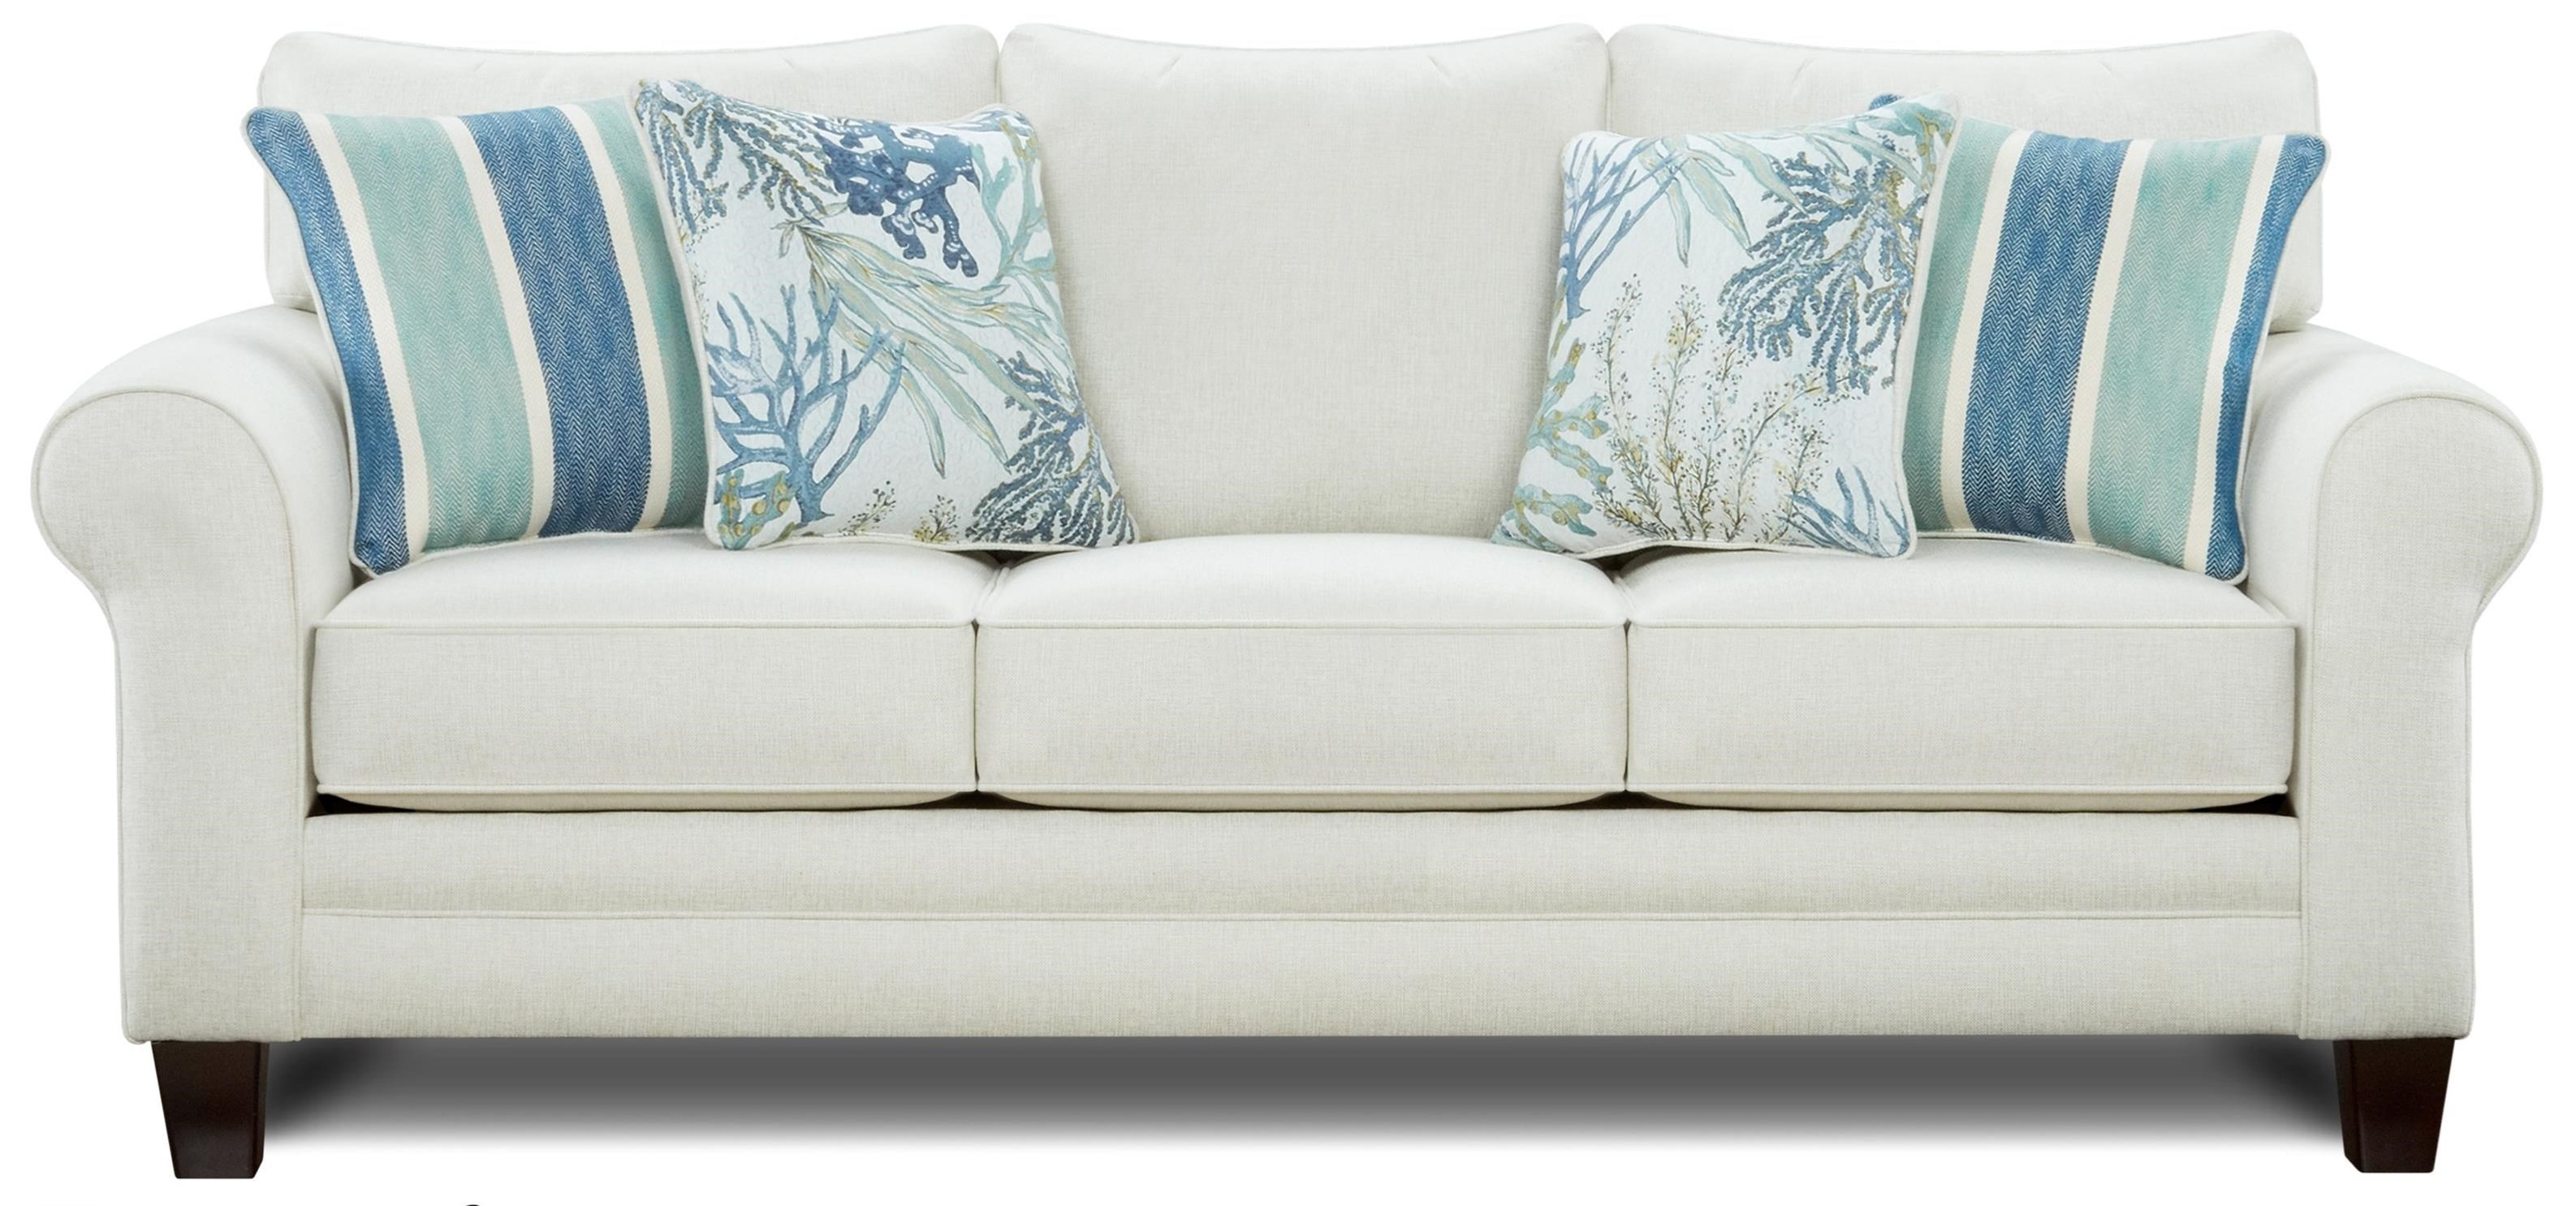 1140 Sleeper Sofa by Fusion Furniture at Furniture Superstore - Rochester, MN